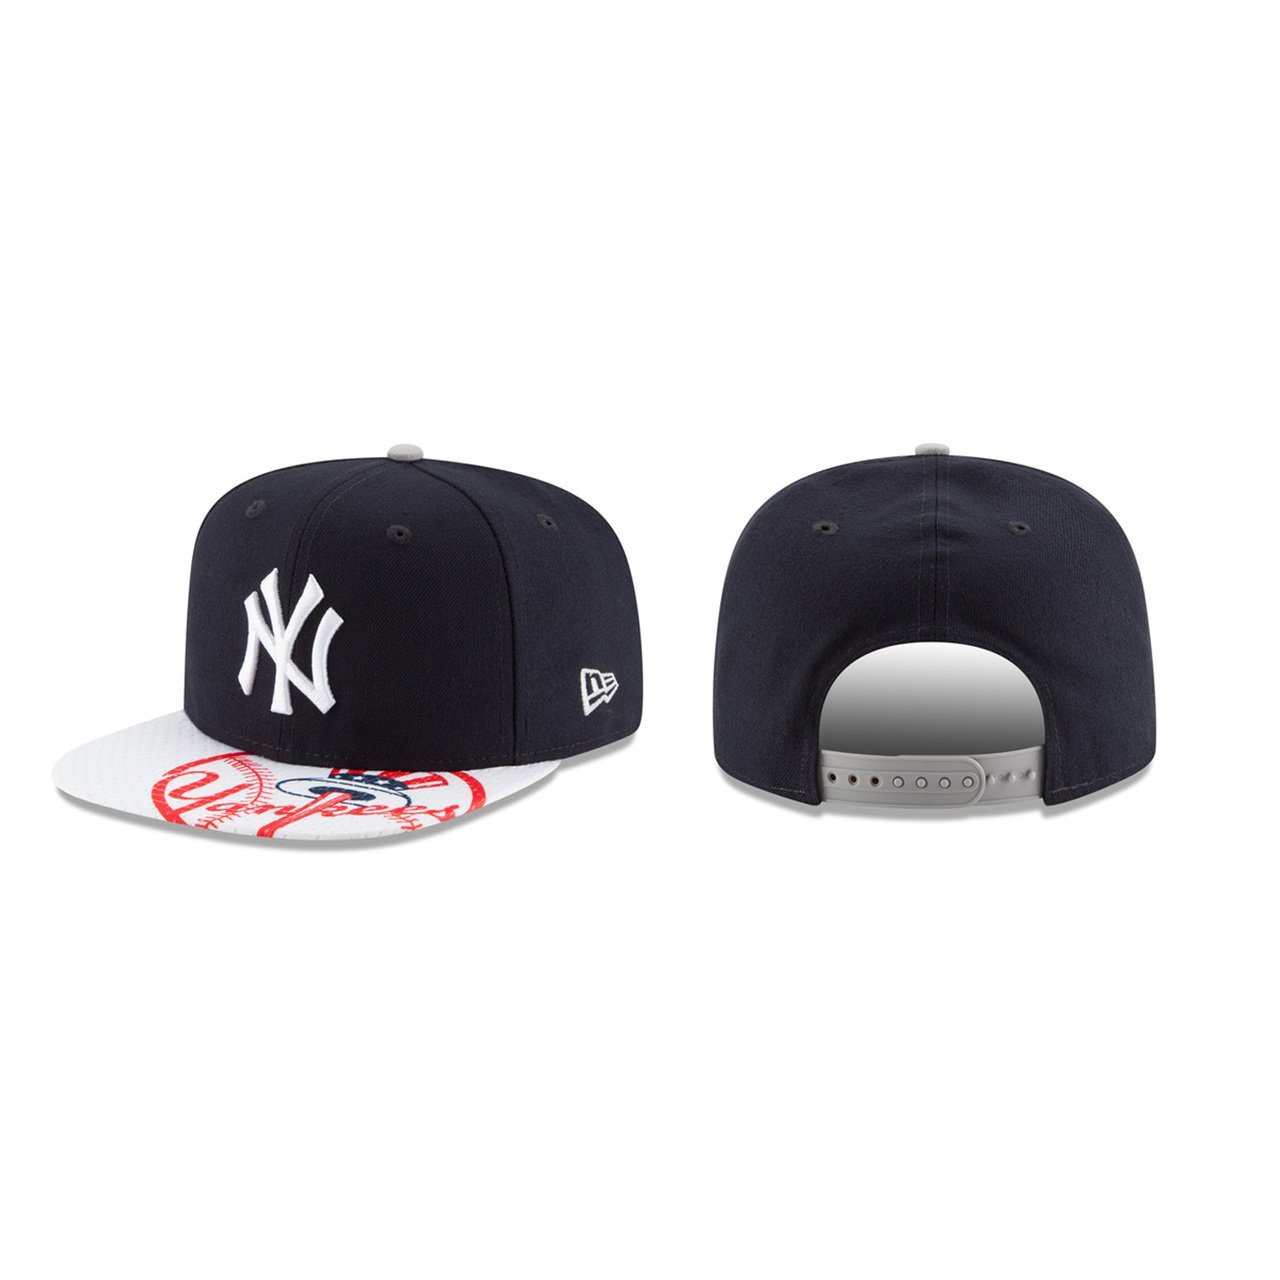 0b640ed8acf Get Quotations · New York Yankees Adult Gym Class Snapback Cap - Navy